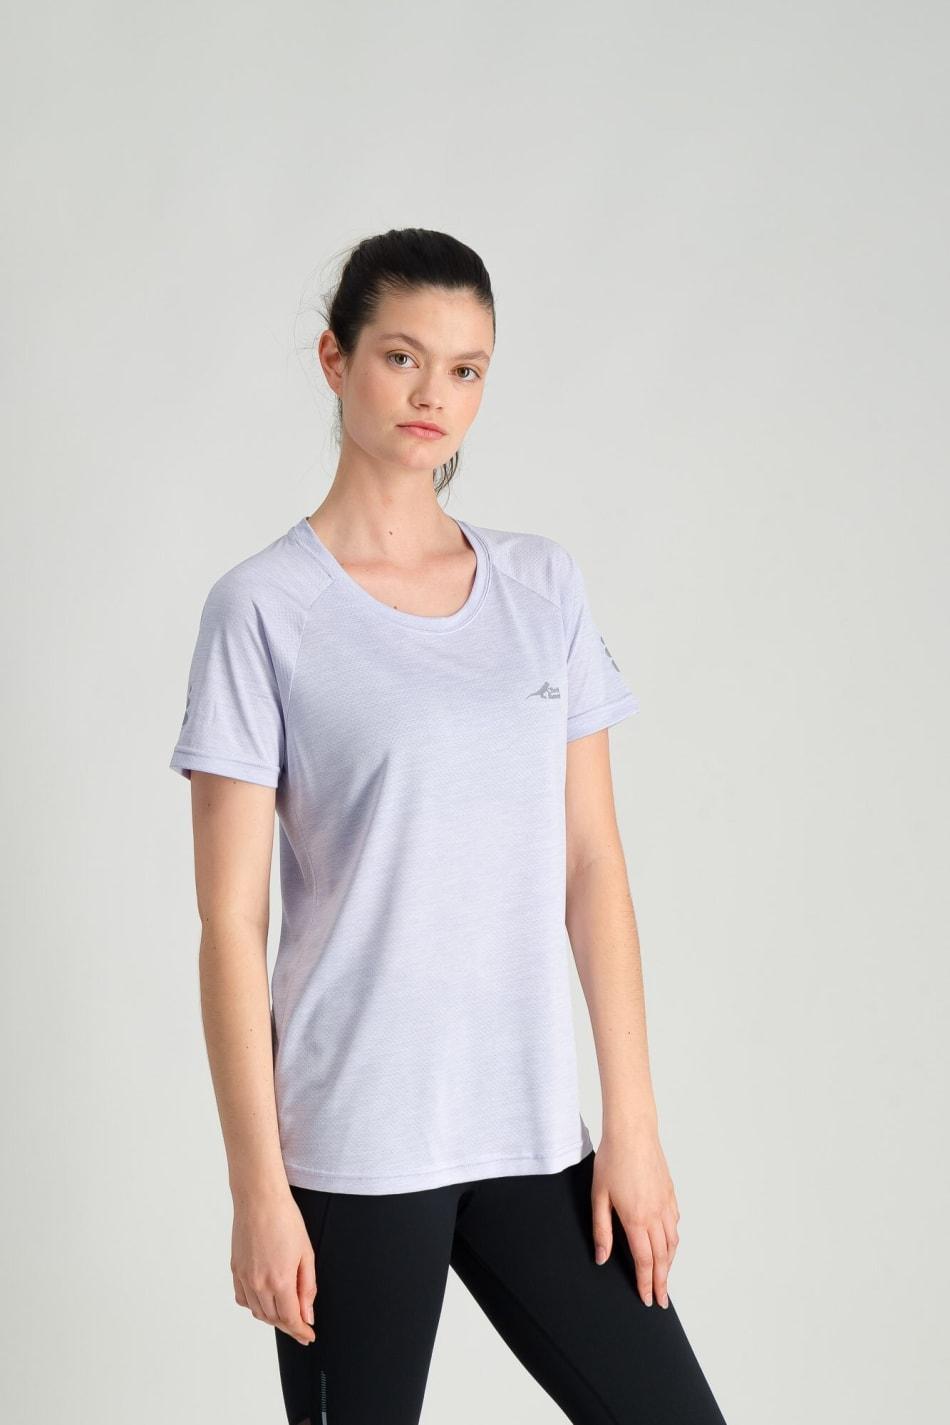 First Ascent Women's Corefit Run Tee, product, variation 2